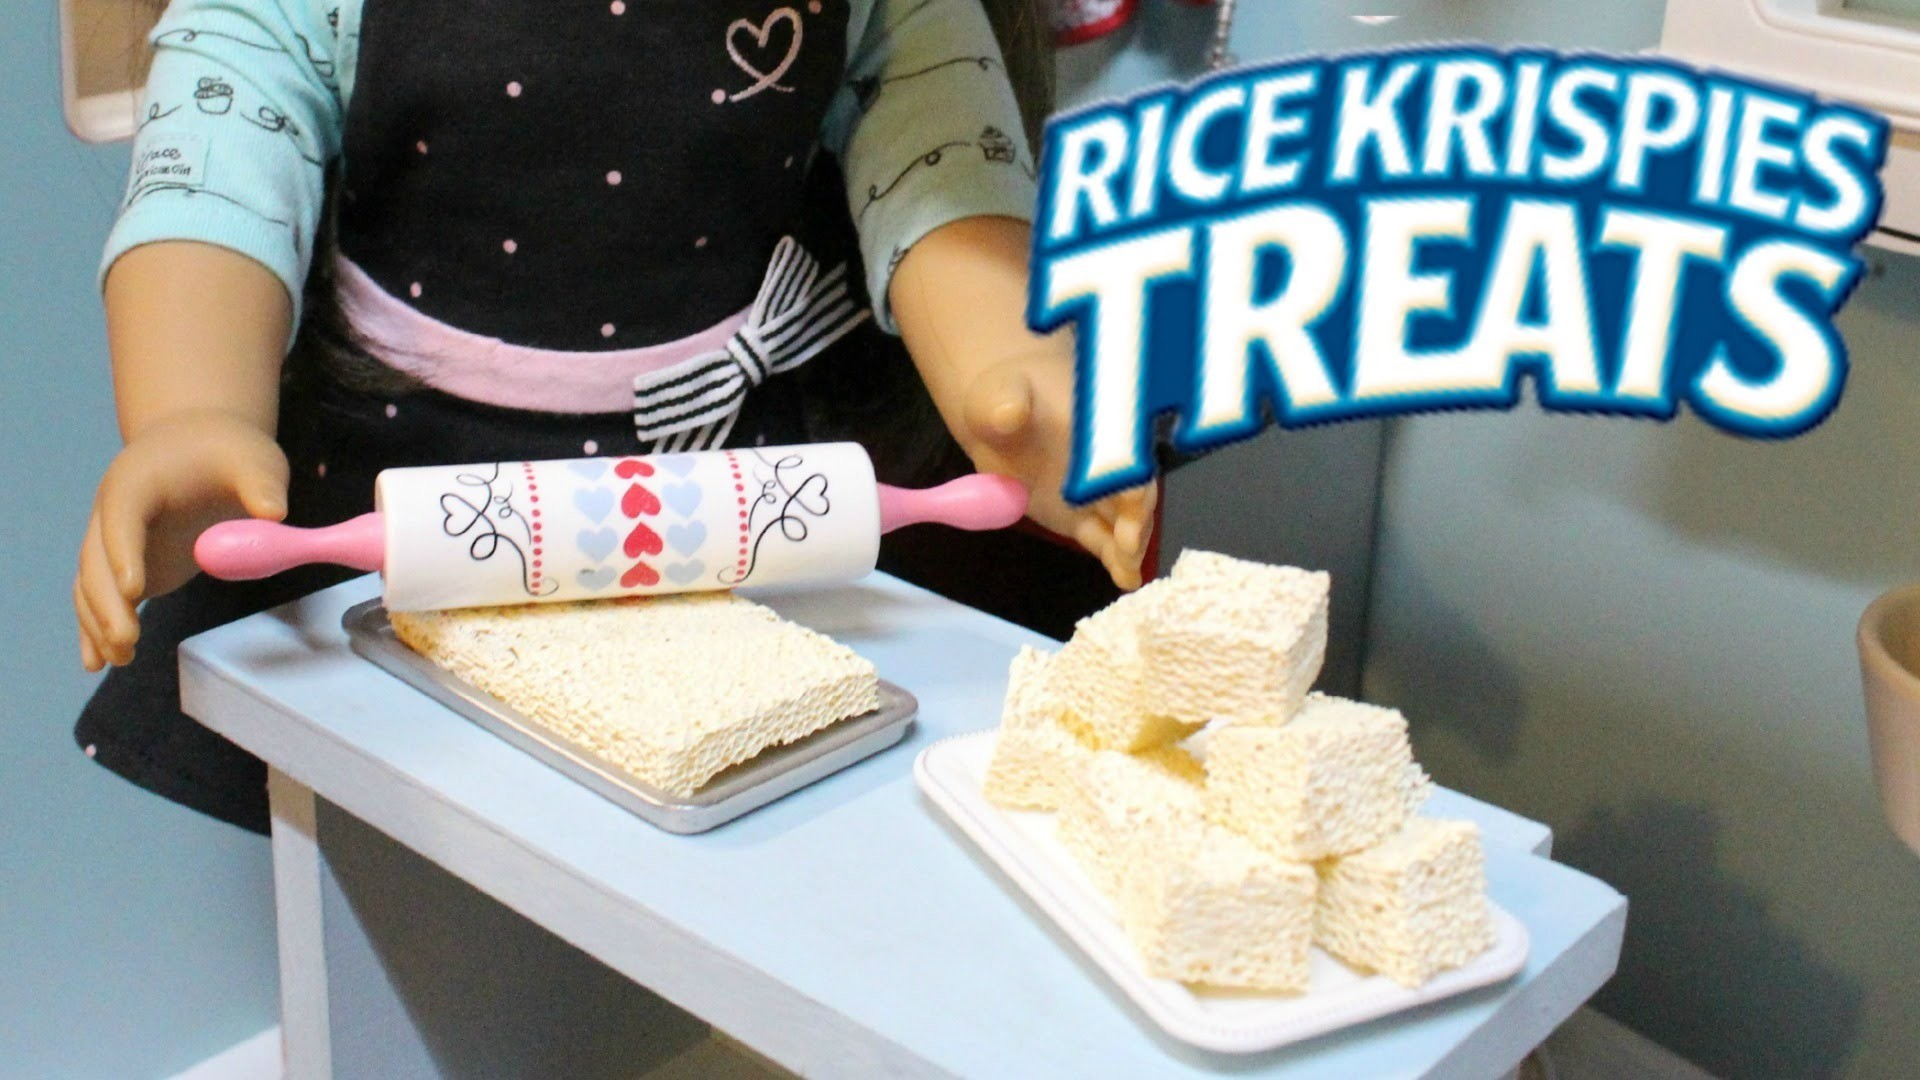 DIY American Girl Rice Krispies Treats